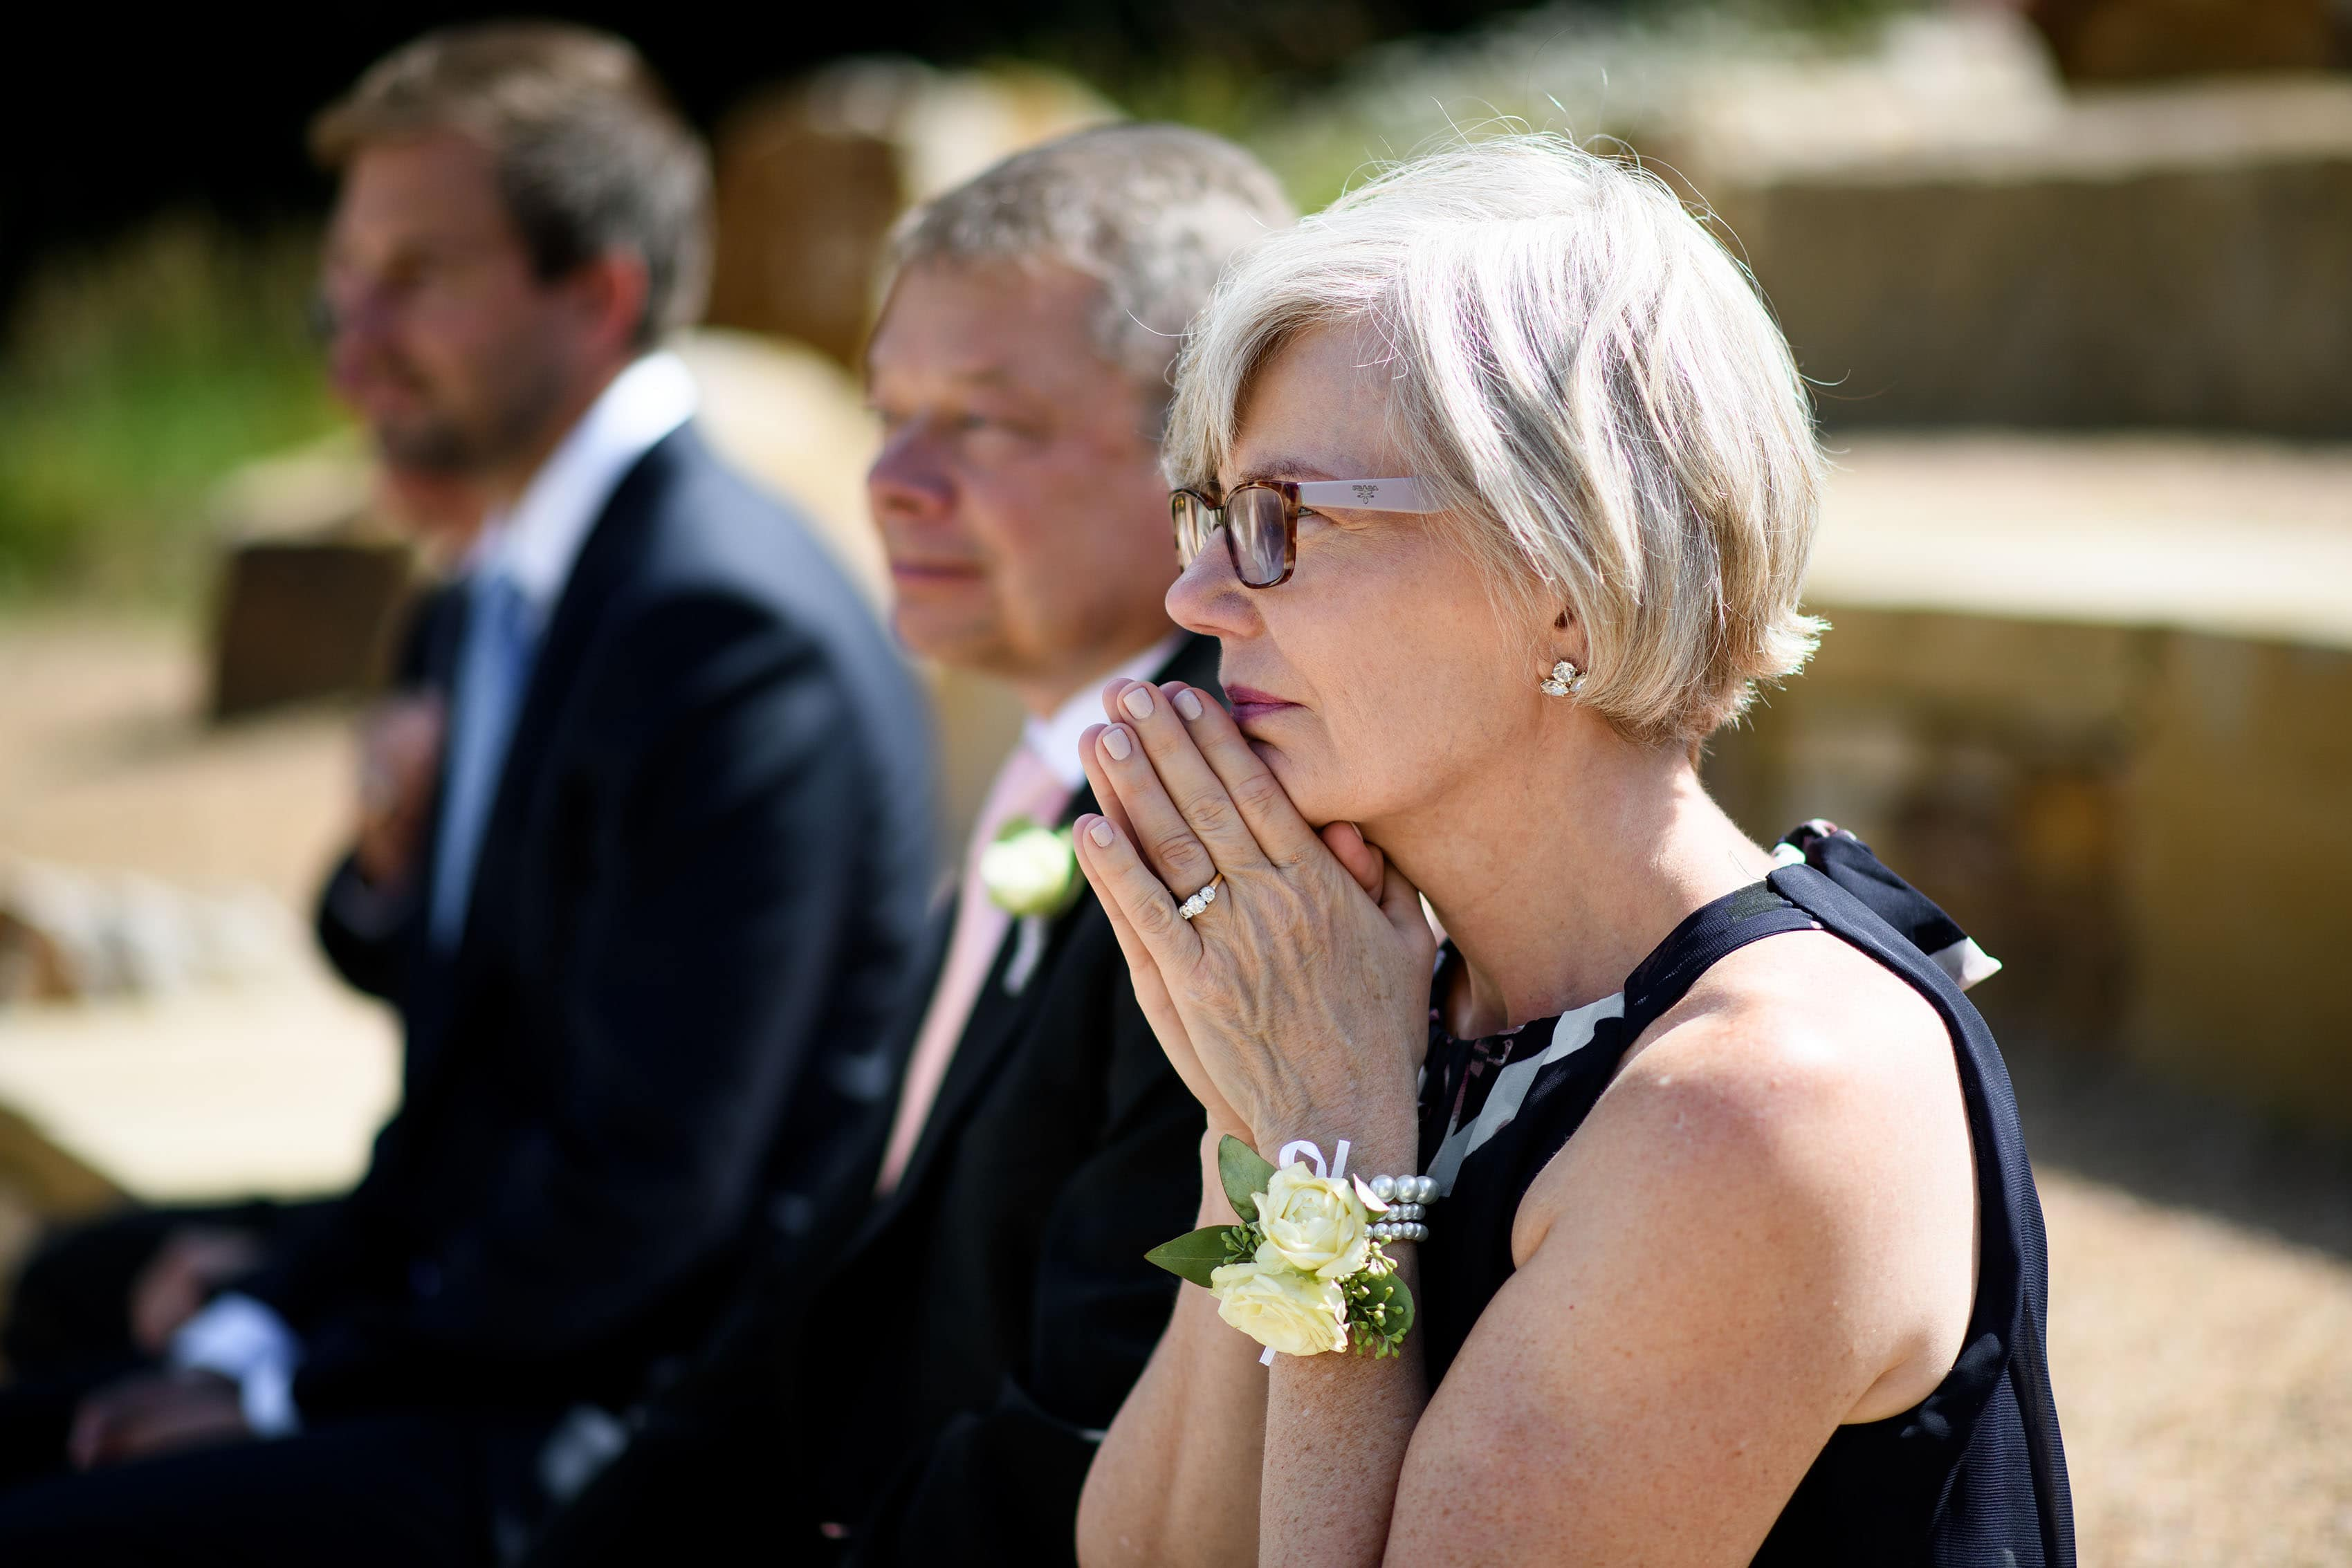 Mother of the groom reacts during the ceremony